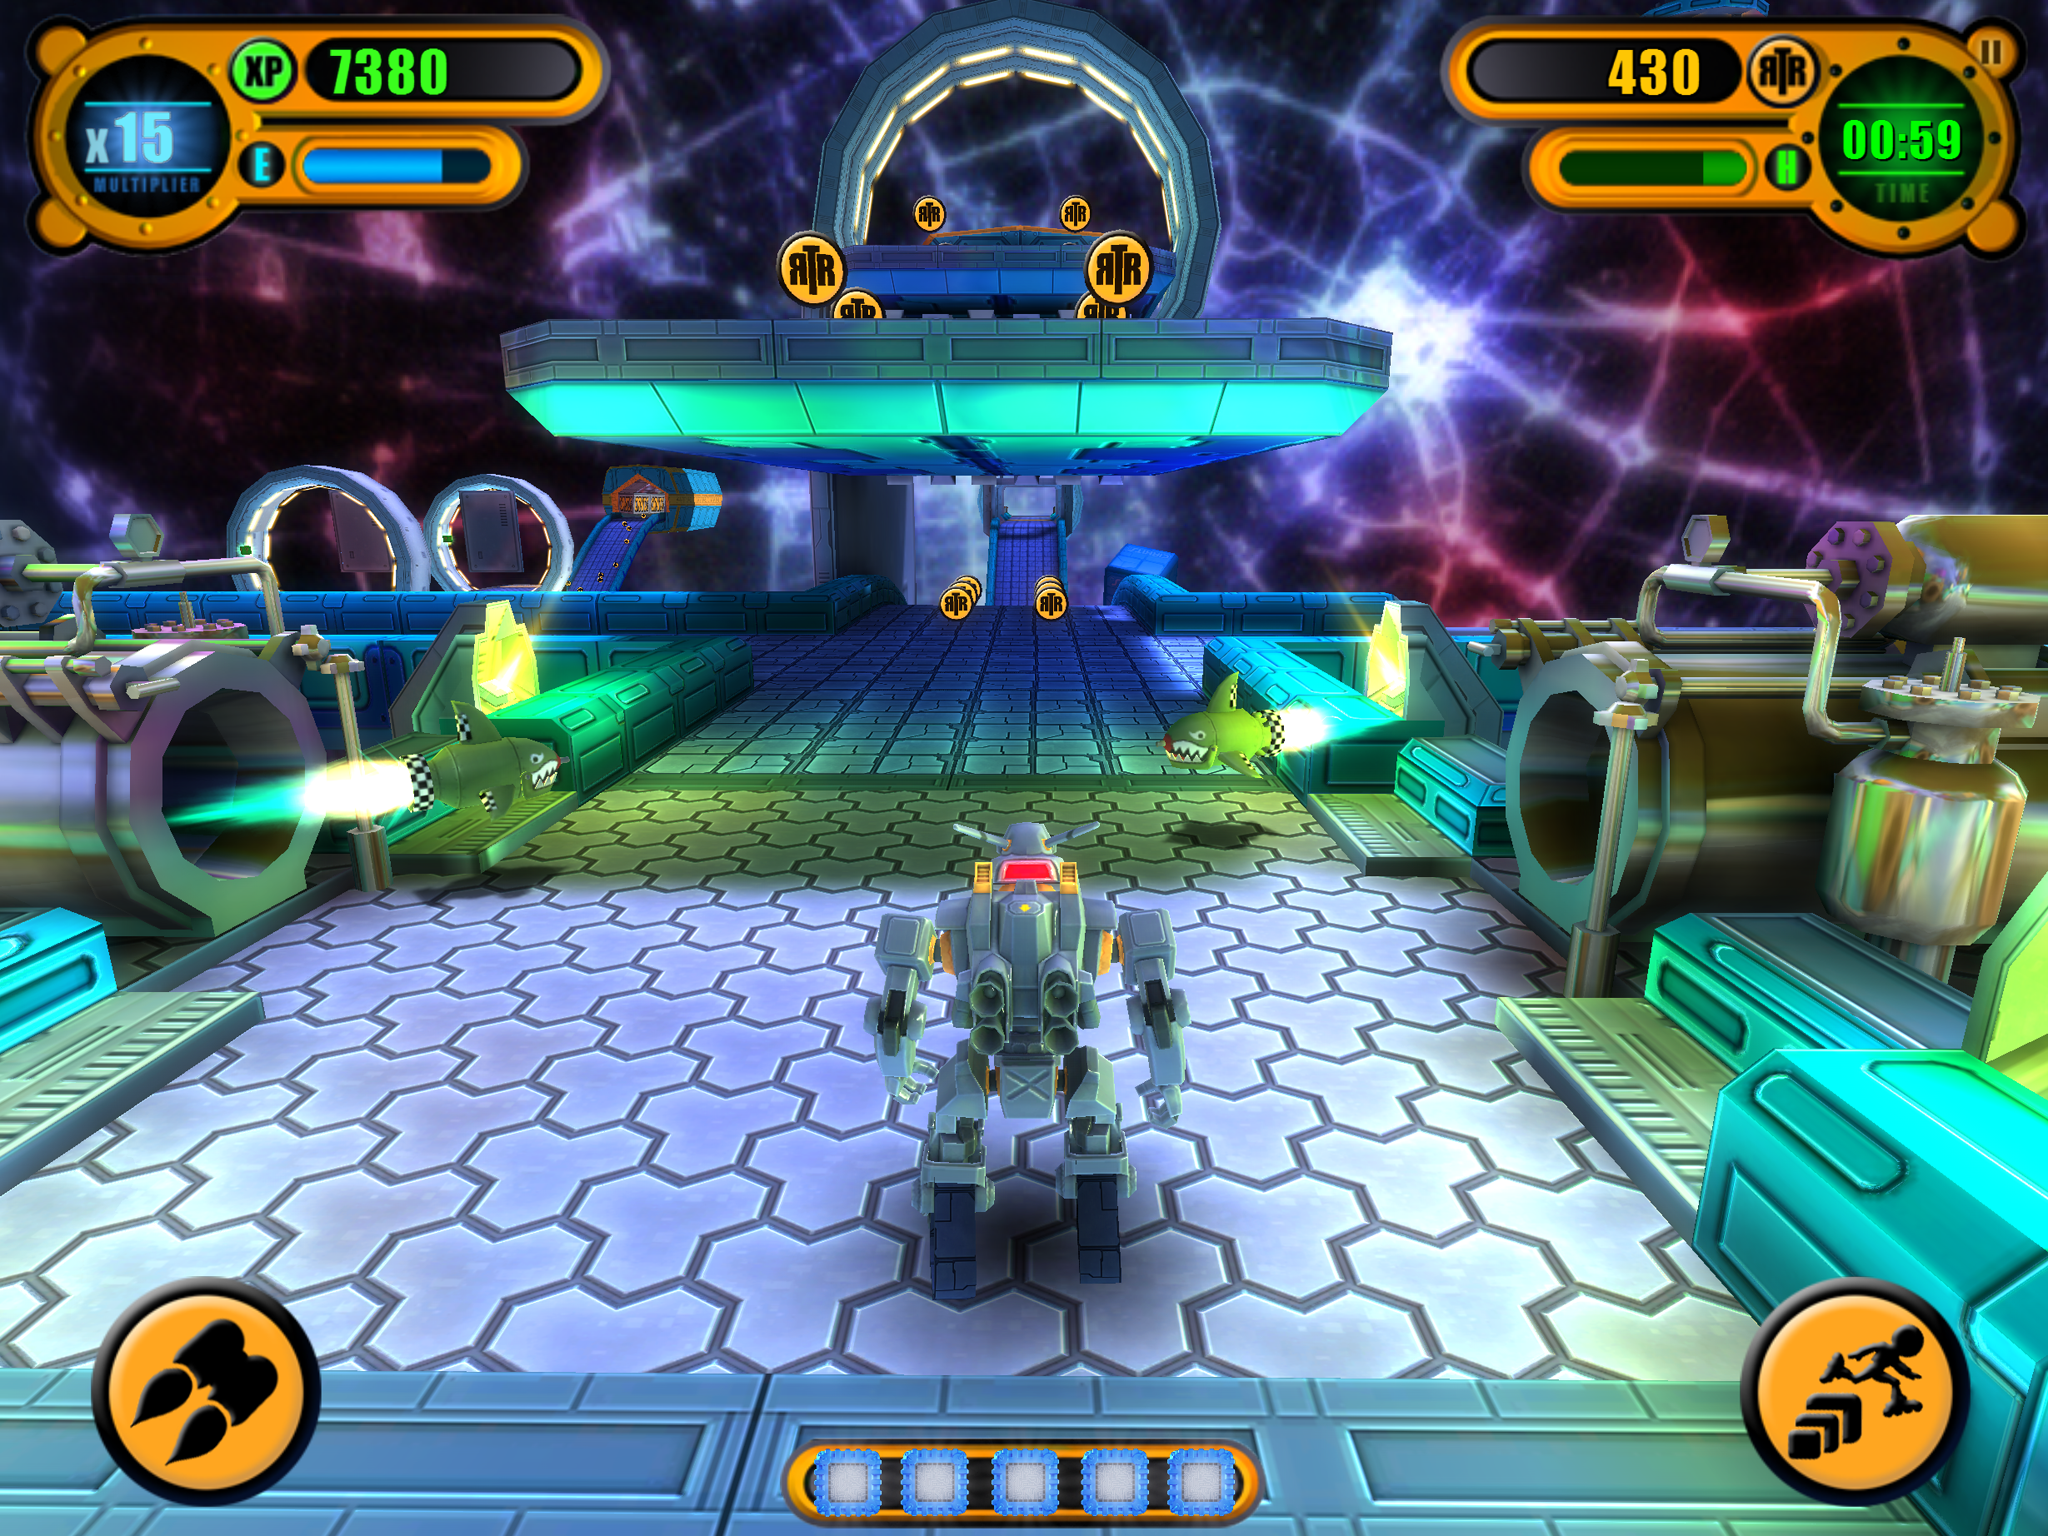 A screenshot of the game taken on iPad 3 using Gunhead Robot